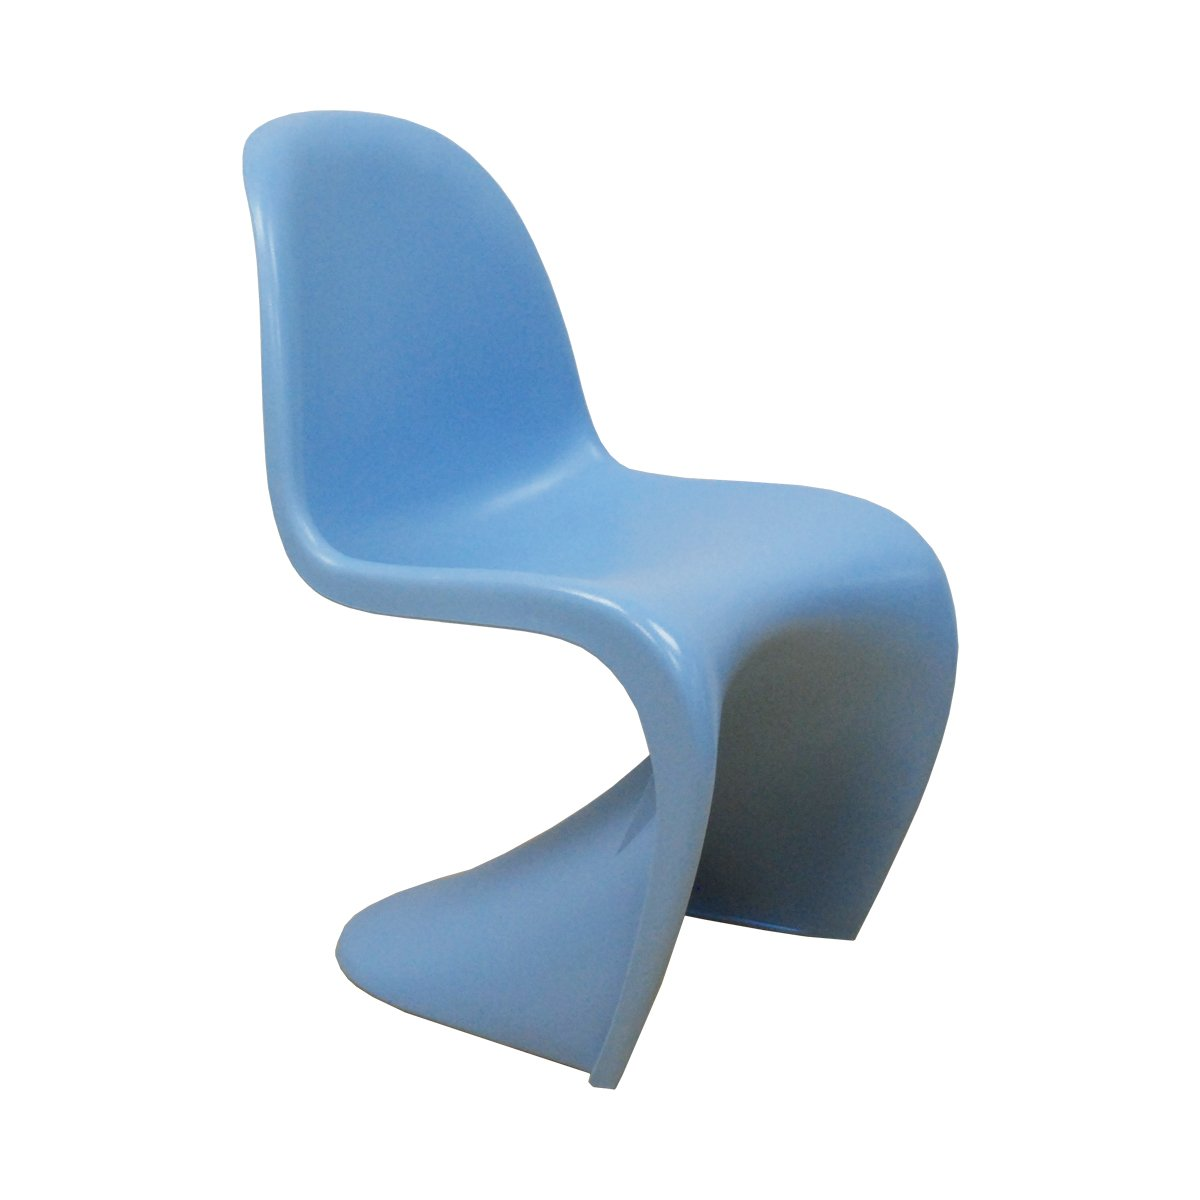 bluee Mod Made Mid Century Modern Molded Plastic S-Shape Chair Dining Chair, White